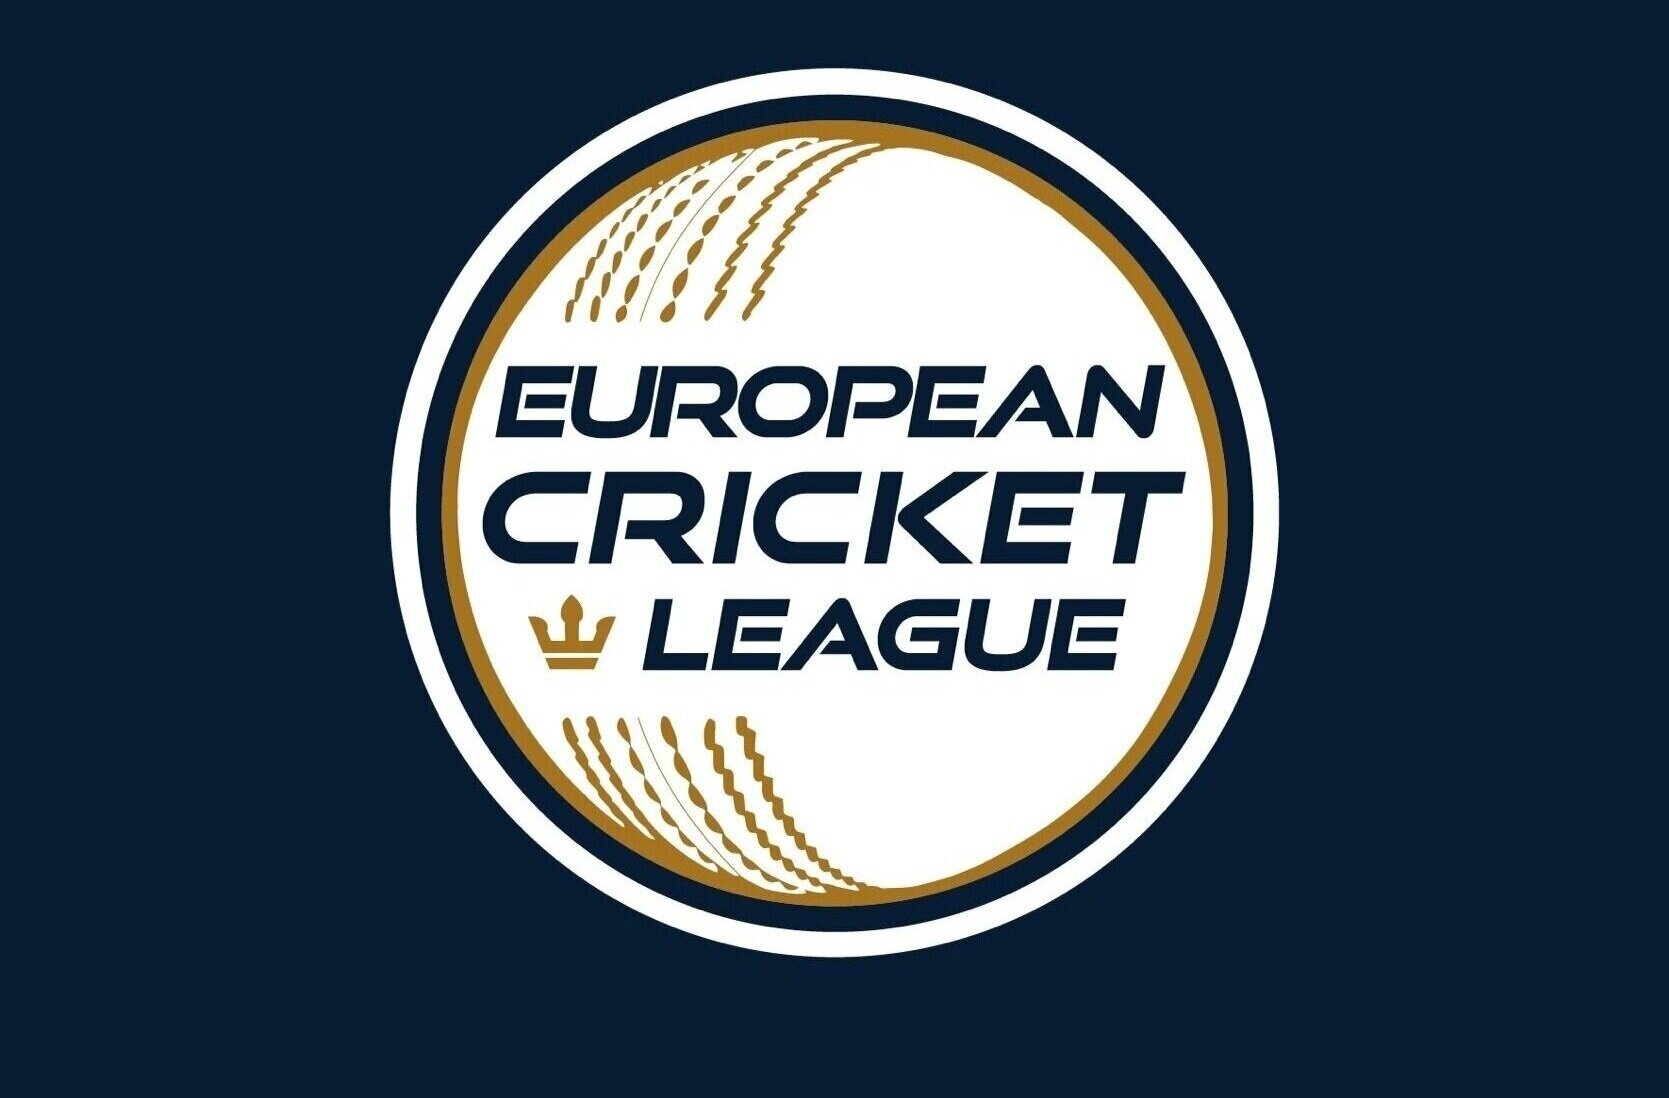 PRESENTED BY… - European Cricket League presented by…